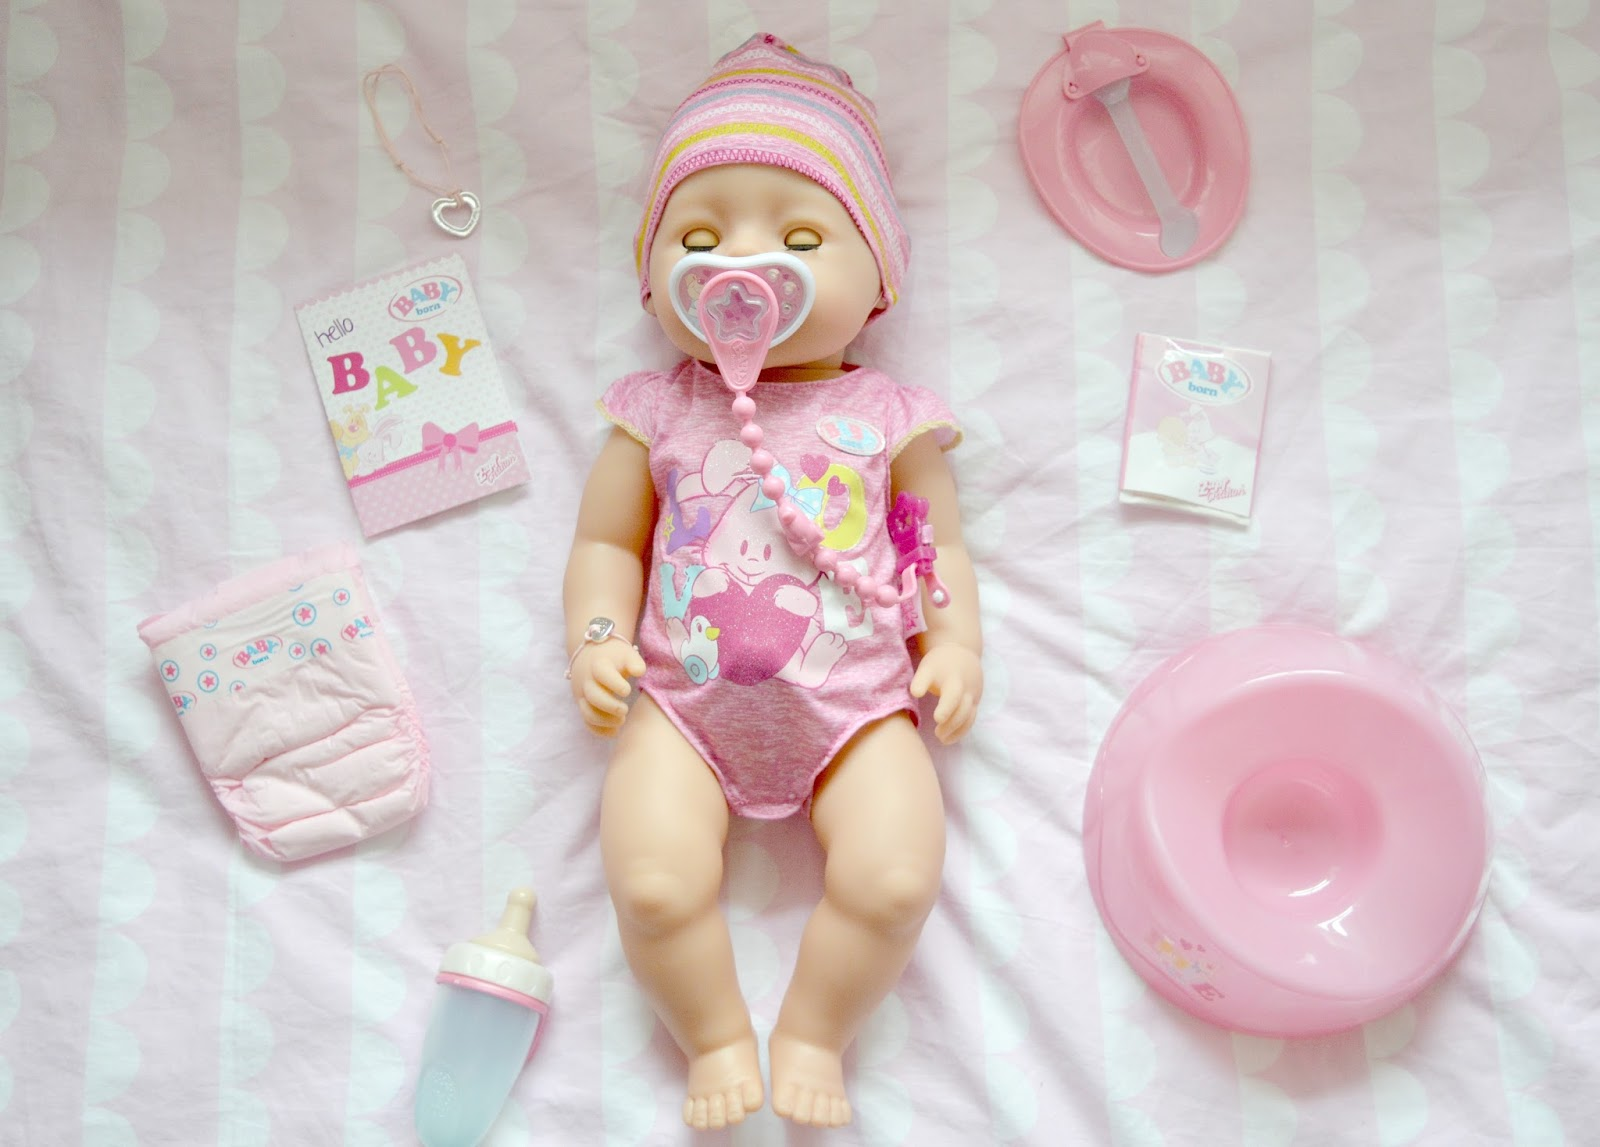 baby born interactive doll review sophie ella and me. Black Bedroom Furniture Sets. Home Design Ideas